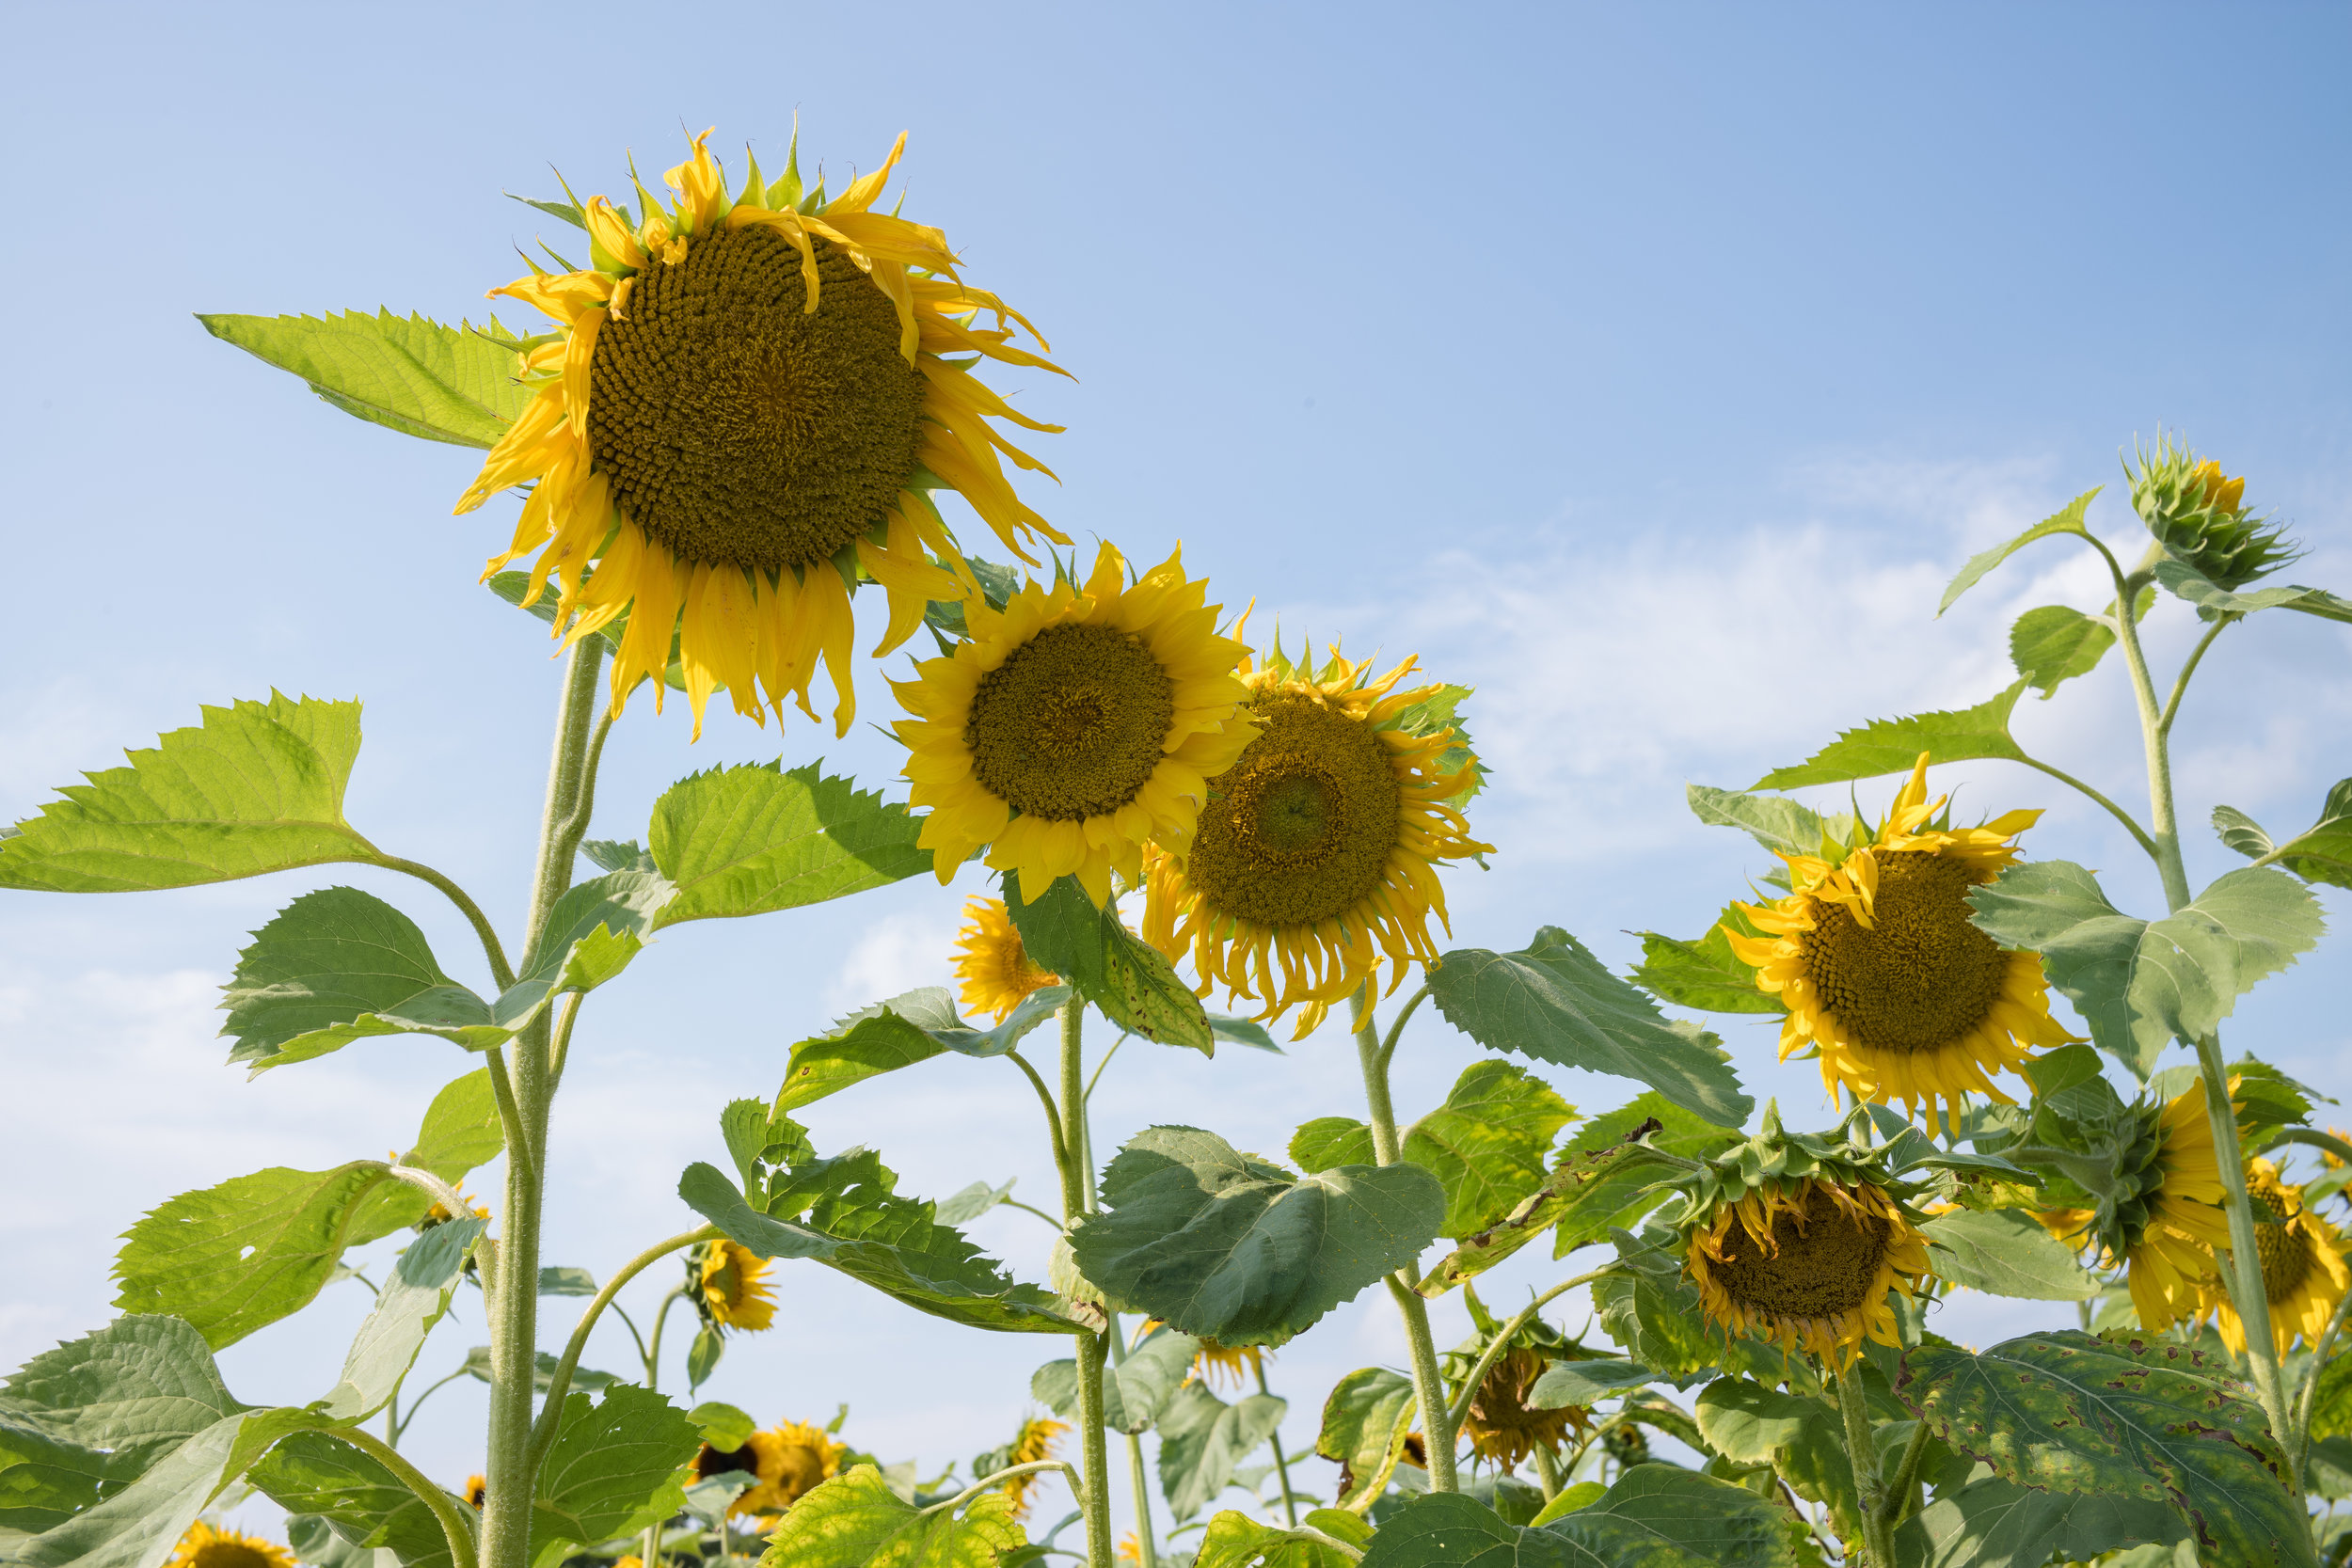 Sunflowers: Sunflowers are a popular symbol of Sonneberg (which translates to Sun Mountain)